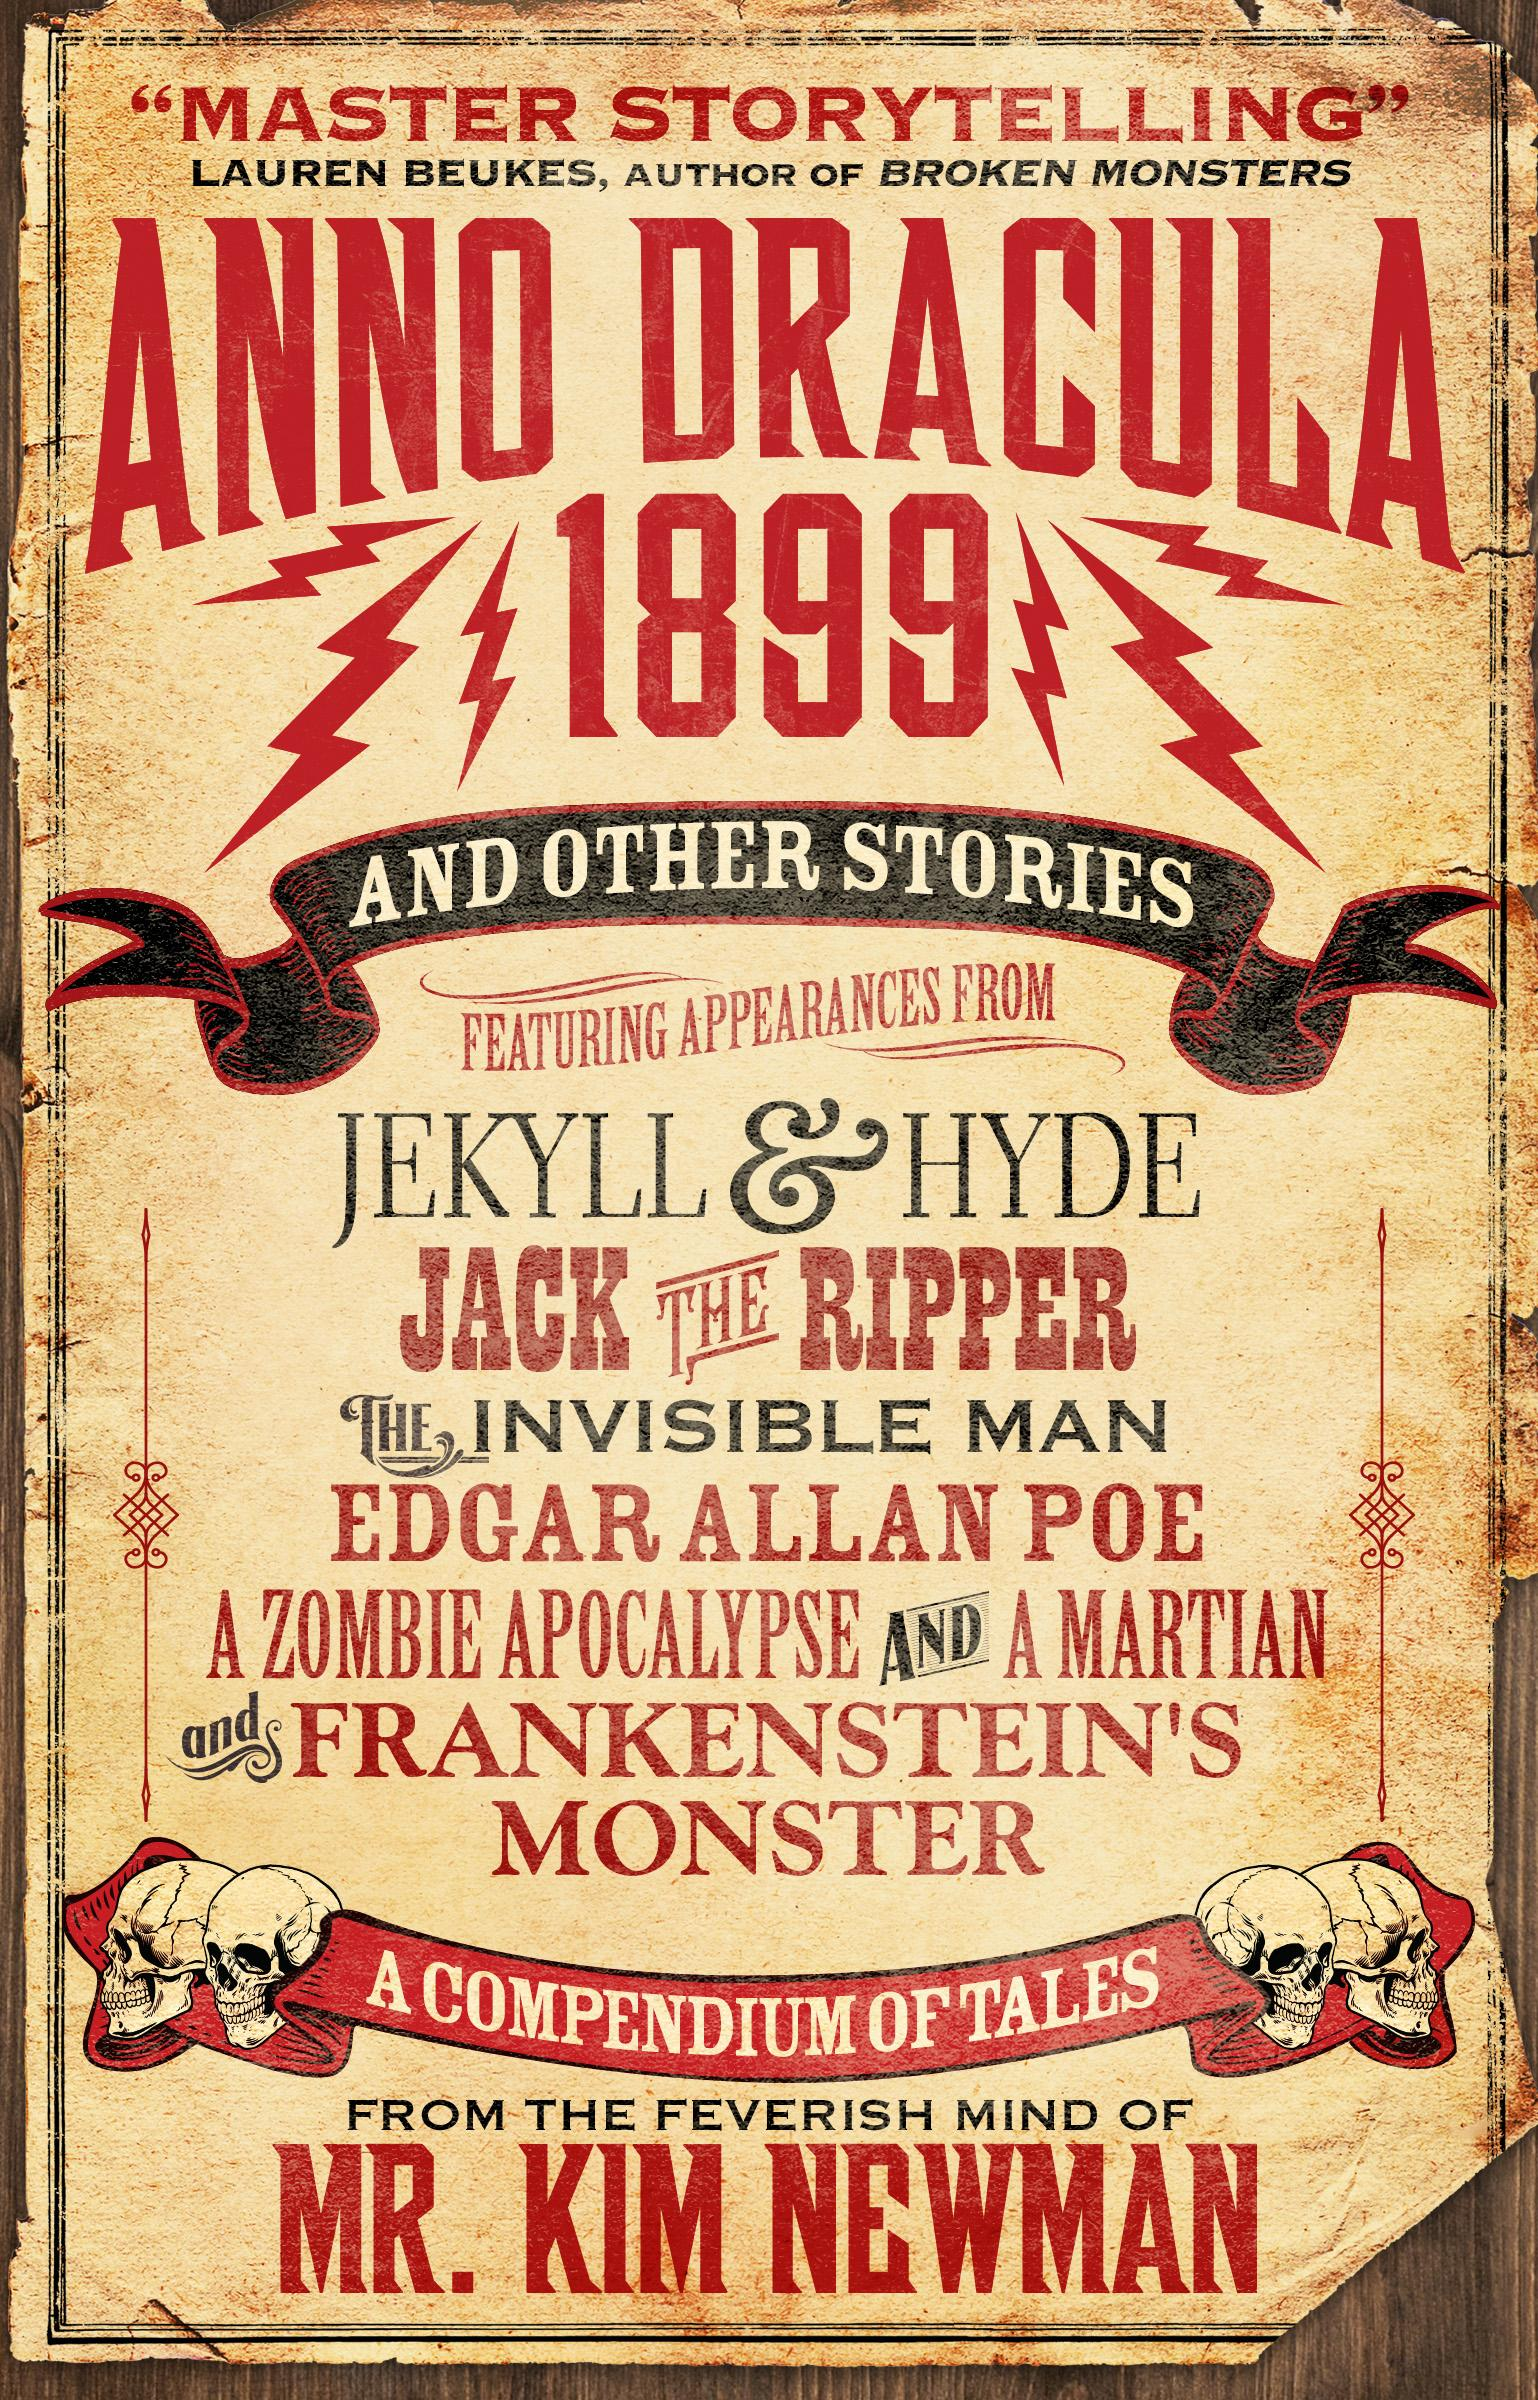 Anno Dracula 1899 and Other Stories dracula s heir